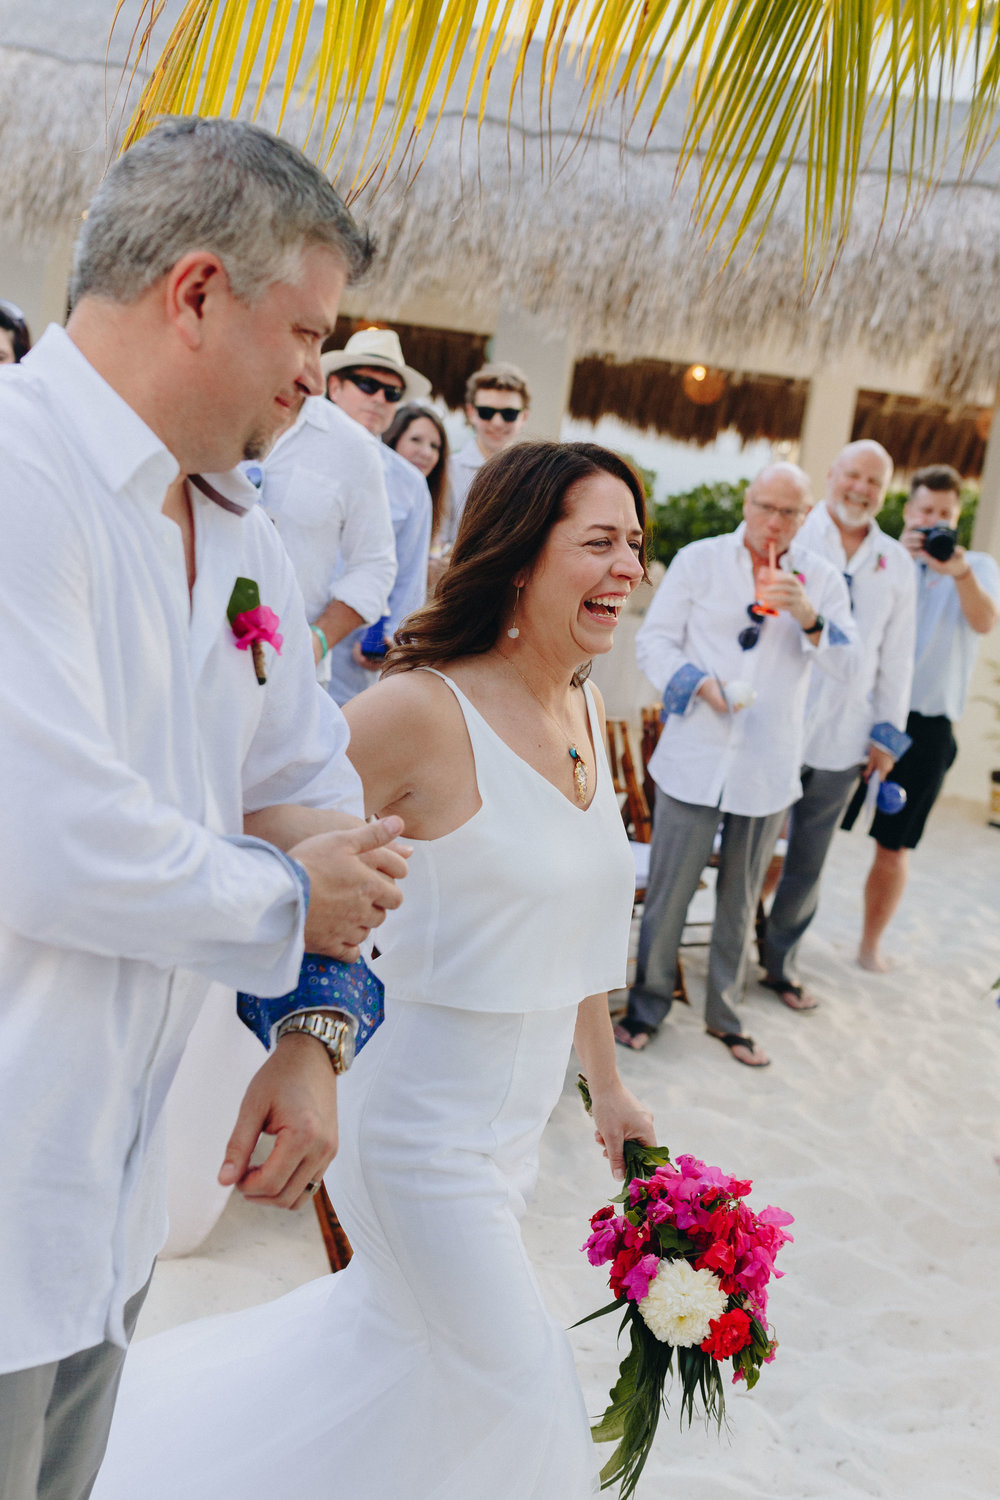 terwedo-destination-wedding-isla-mujeres-blog-197.jpg